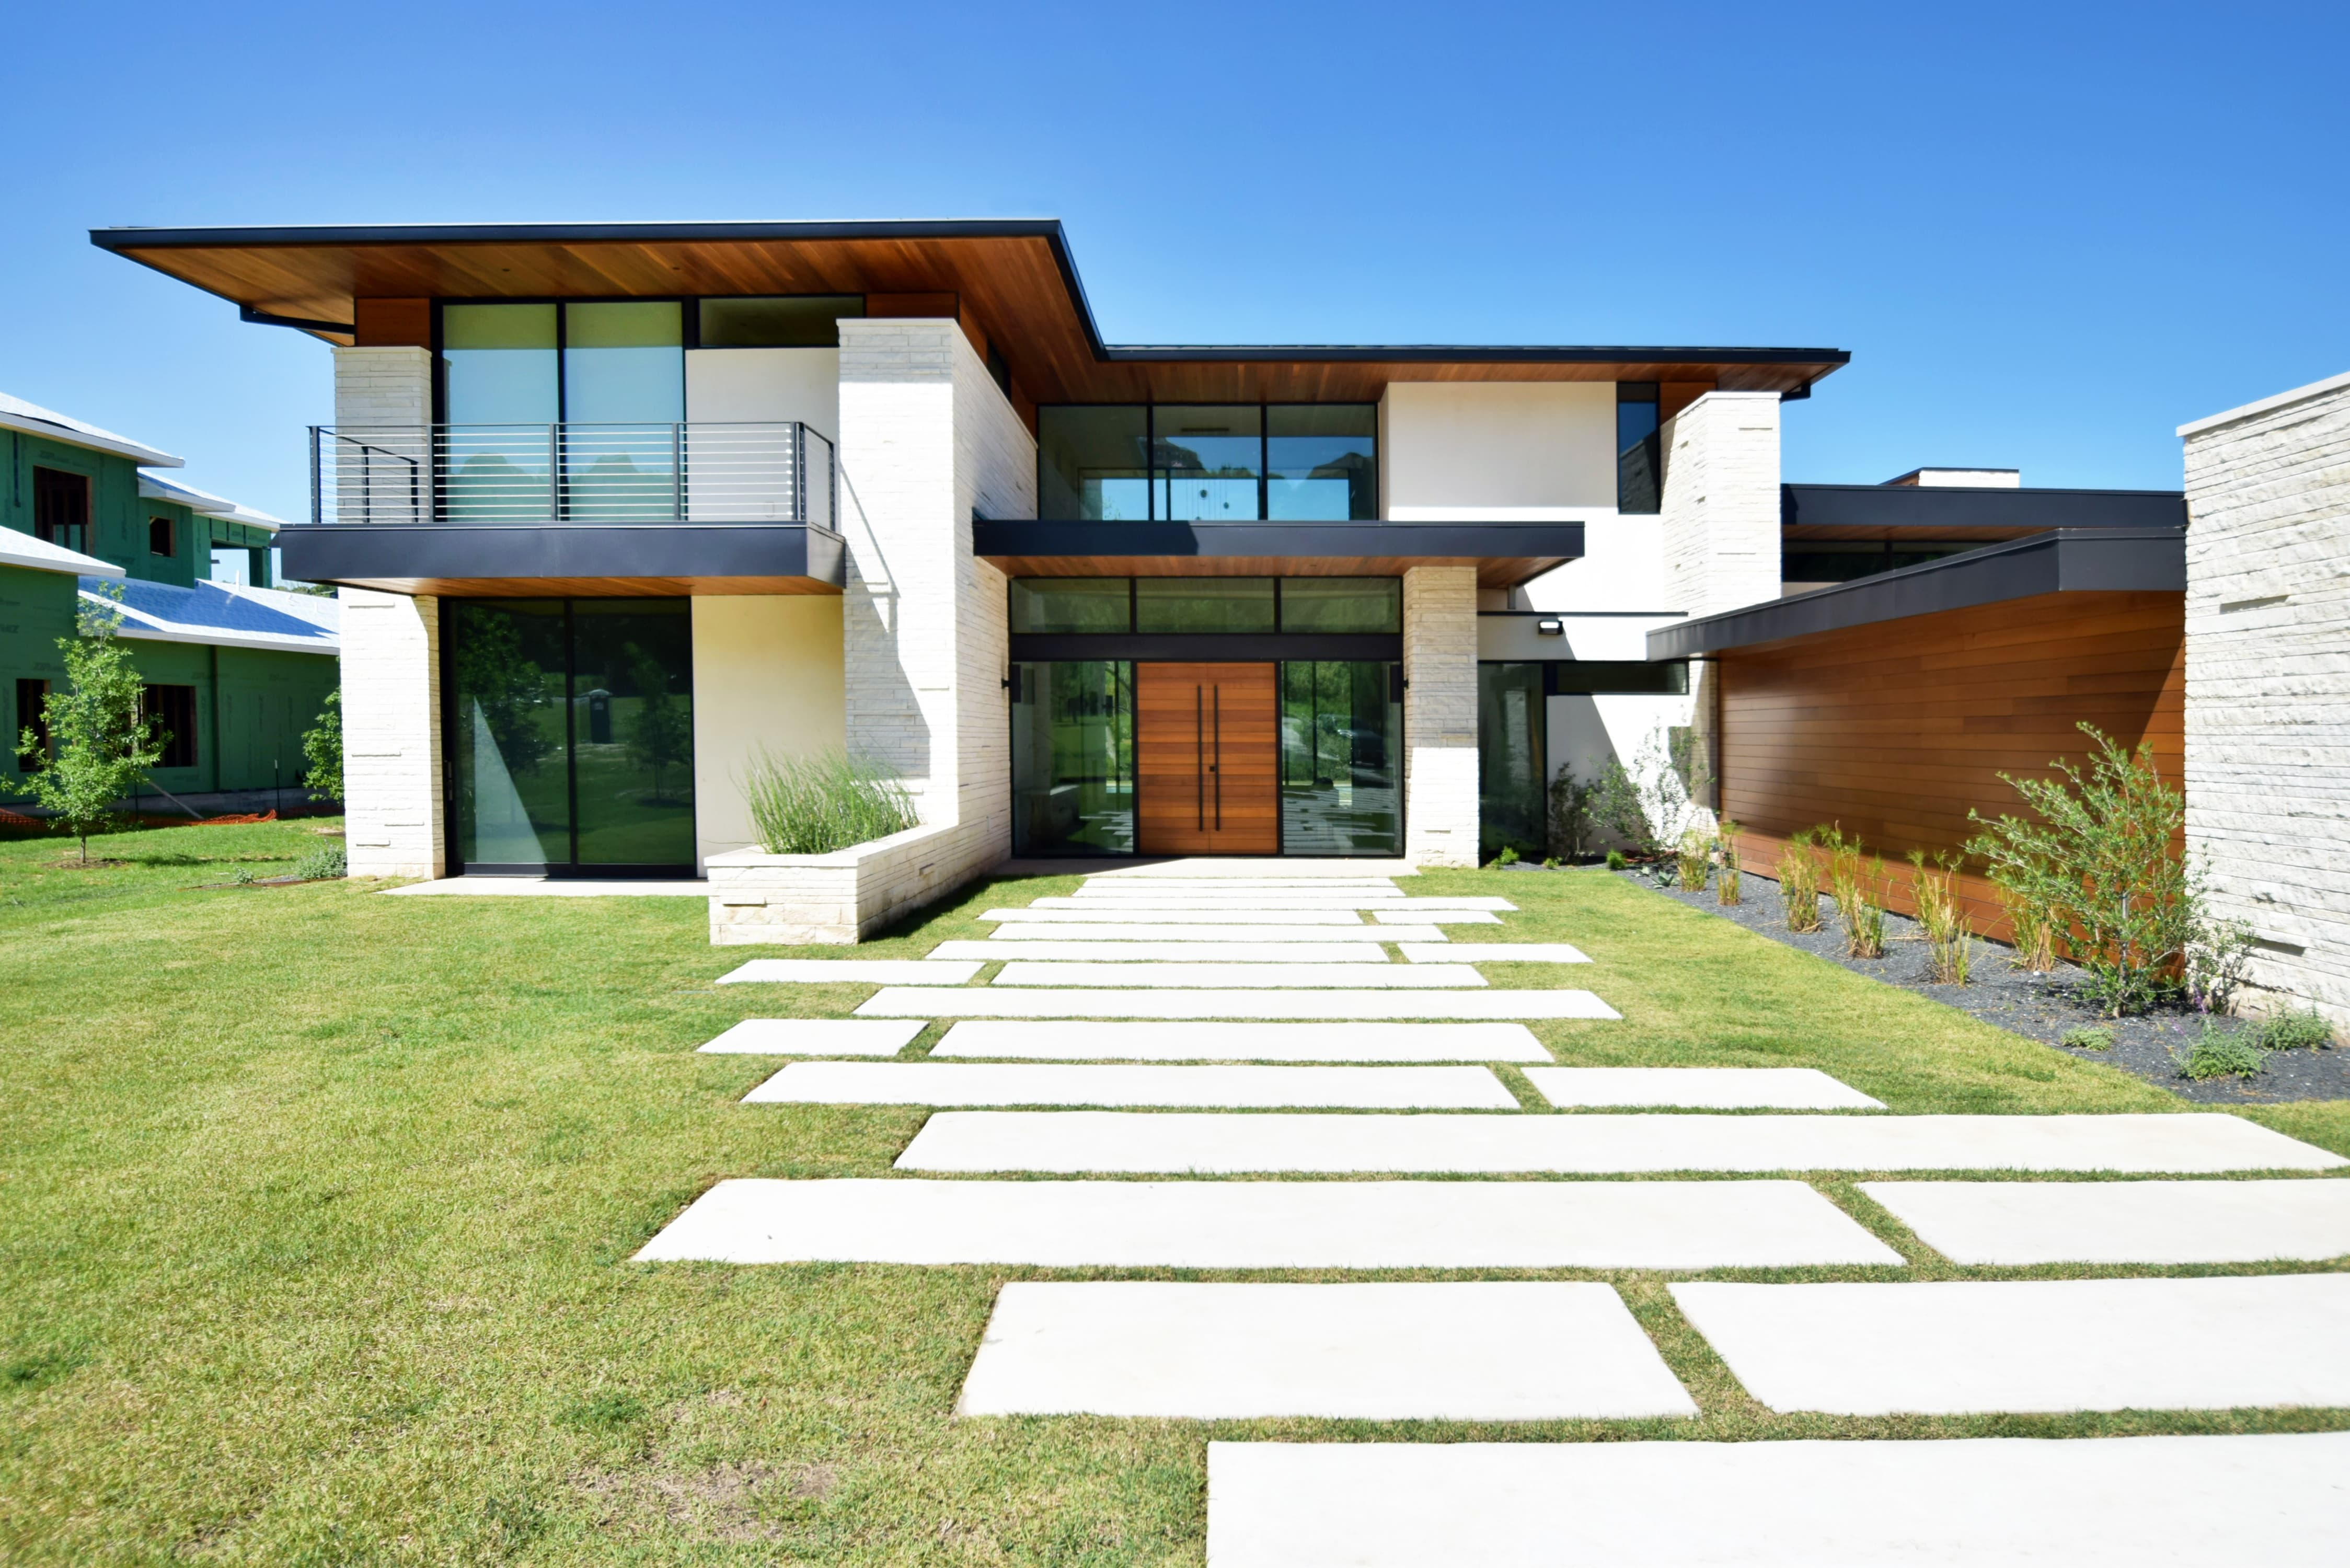 Exterior view of modern home designed by Jay Corder Architect